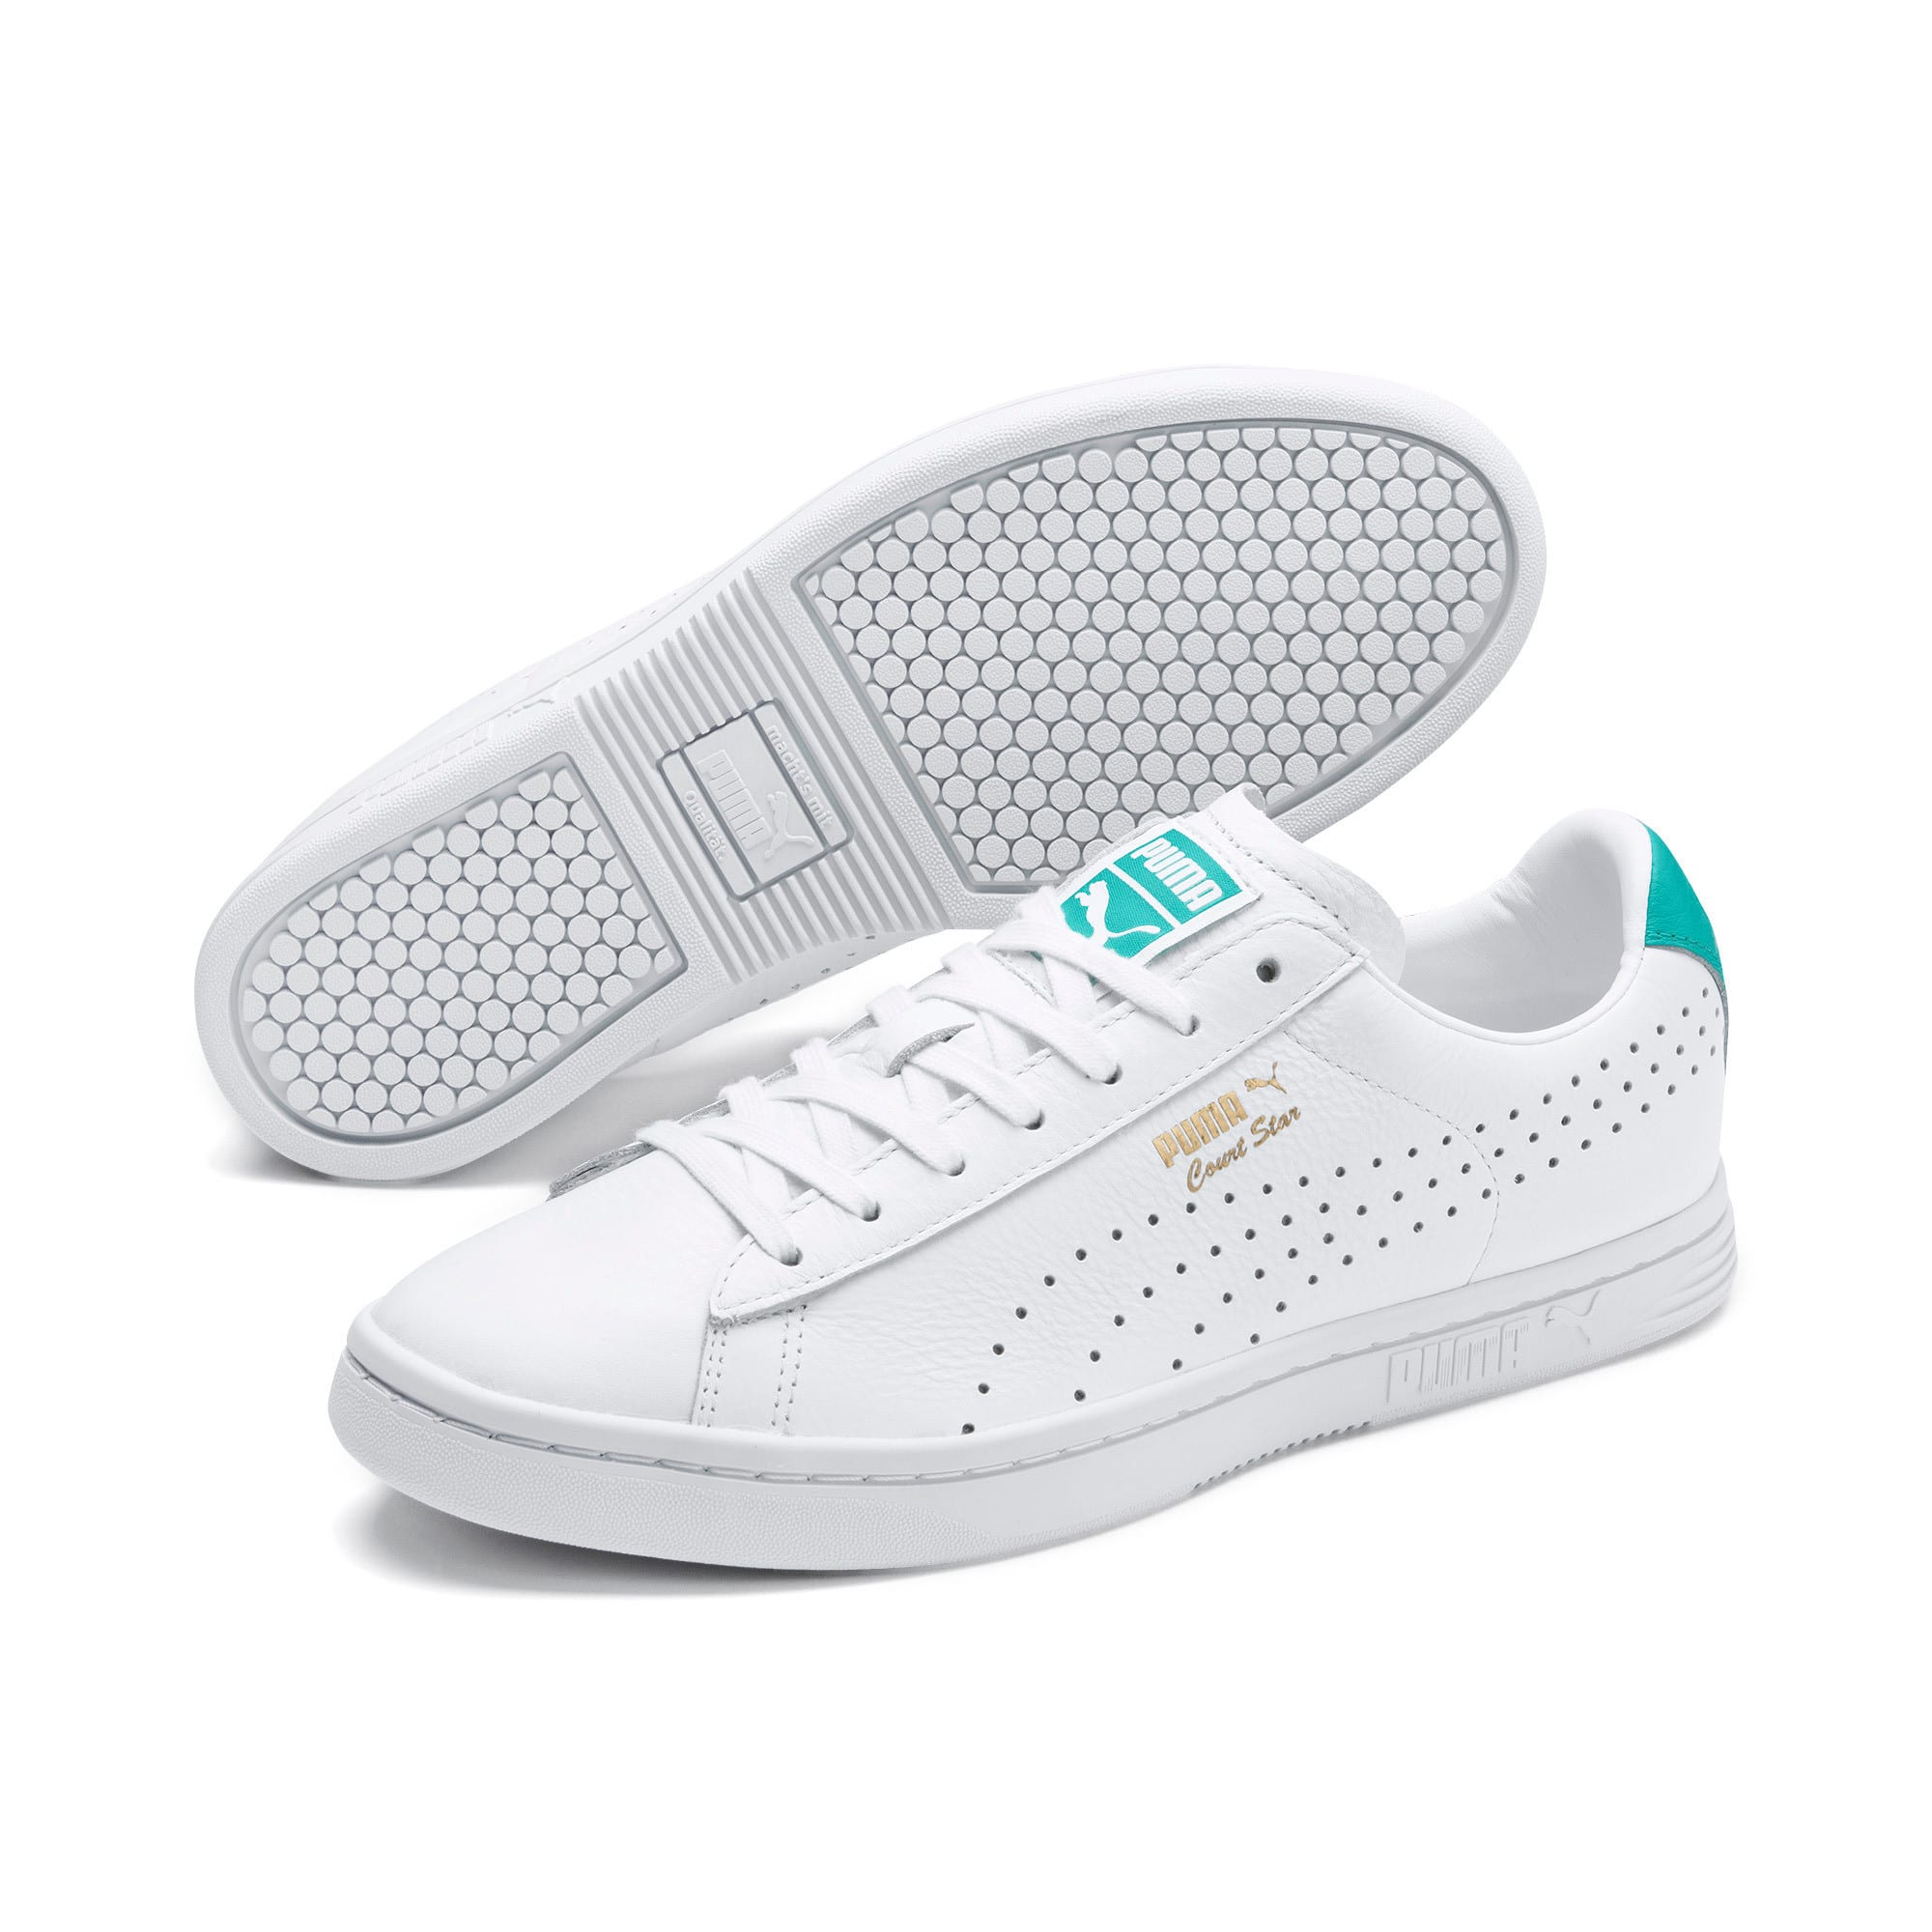 Thumbnail 2 of Court Star Sneakers, Puma White-Blue Turquoise, medium